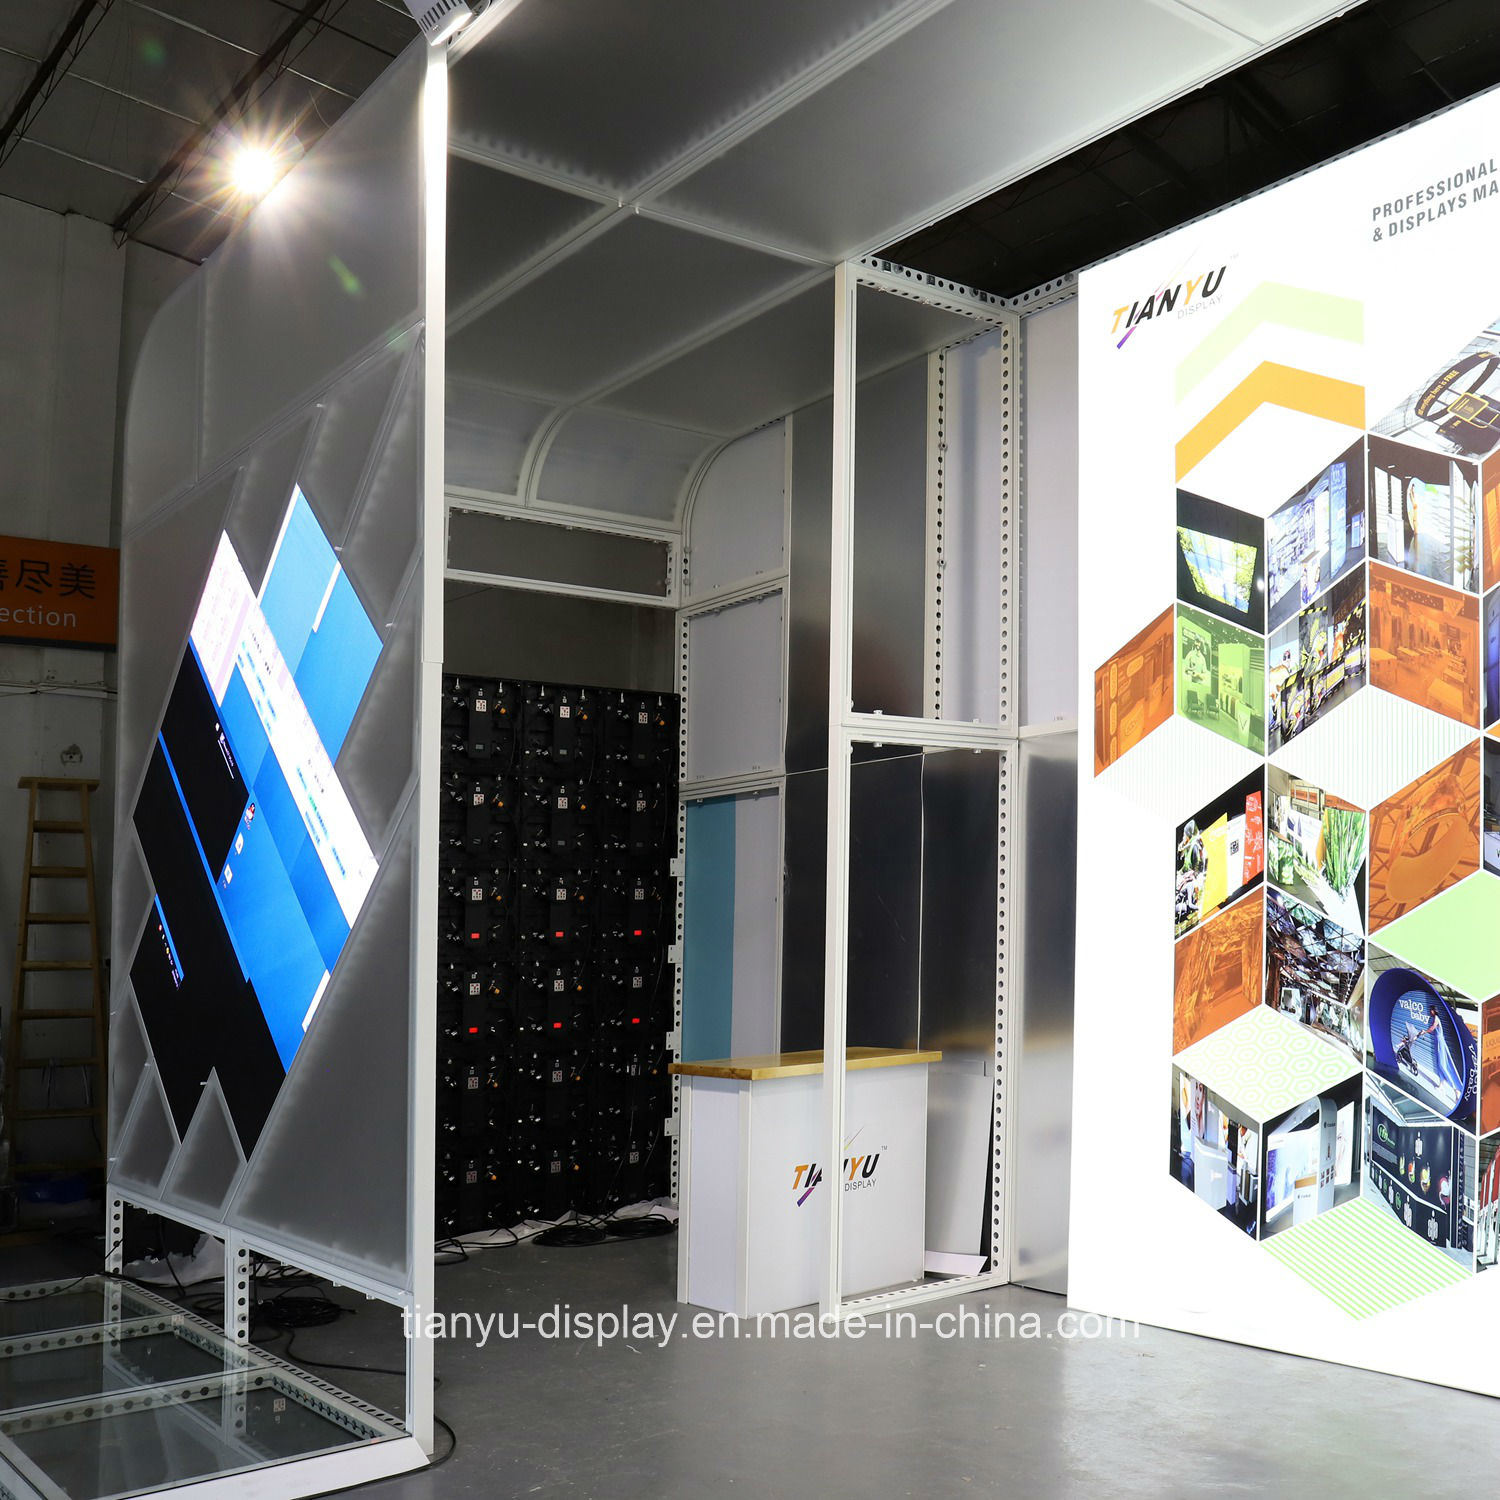 Exhibition Stall Size : China easy handling display booth design size trade show stand